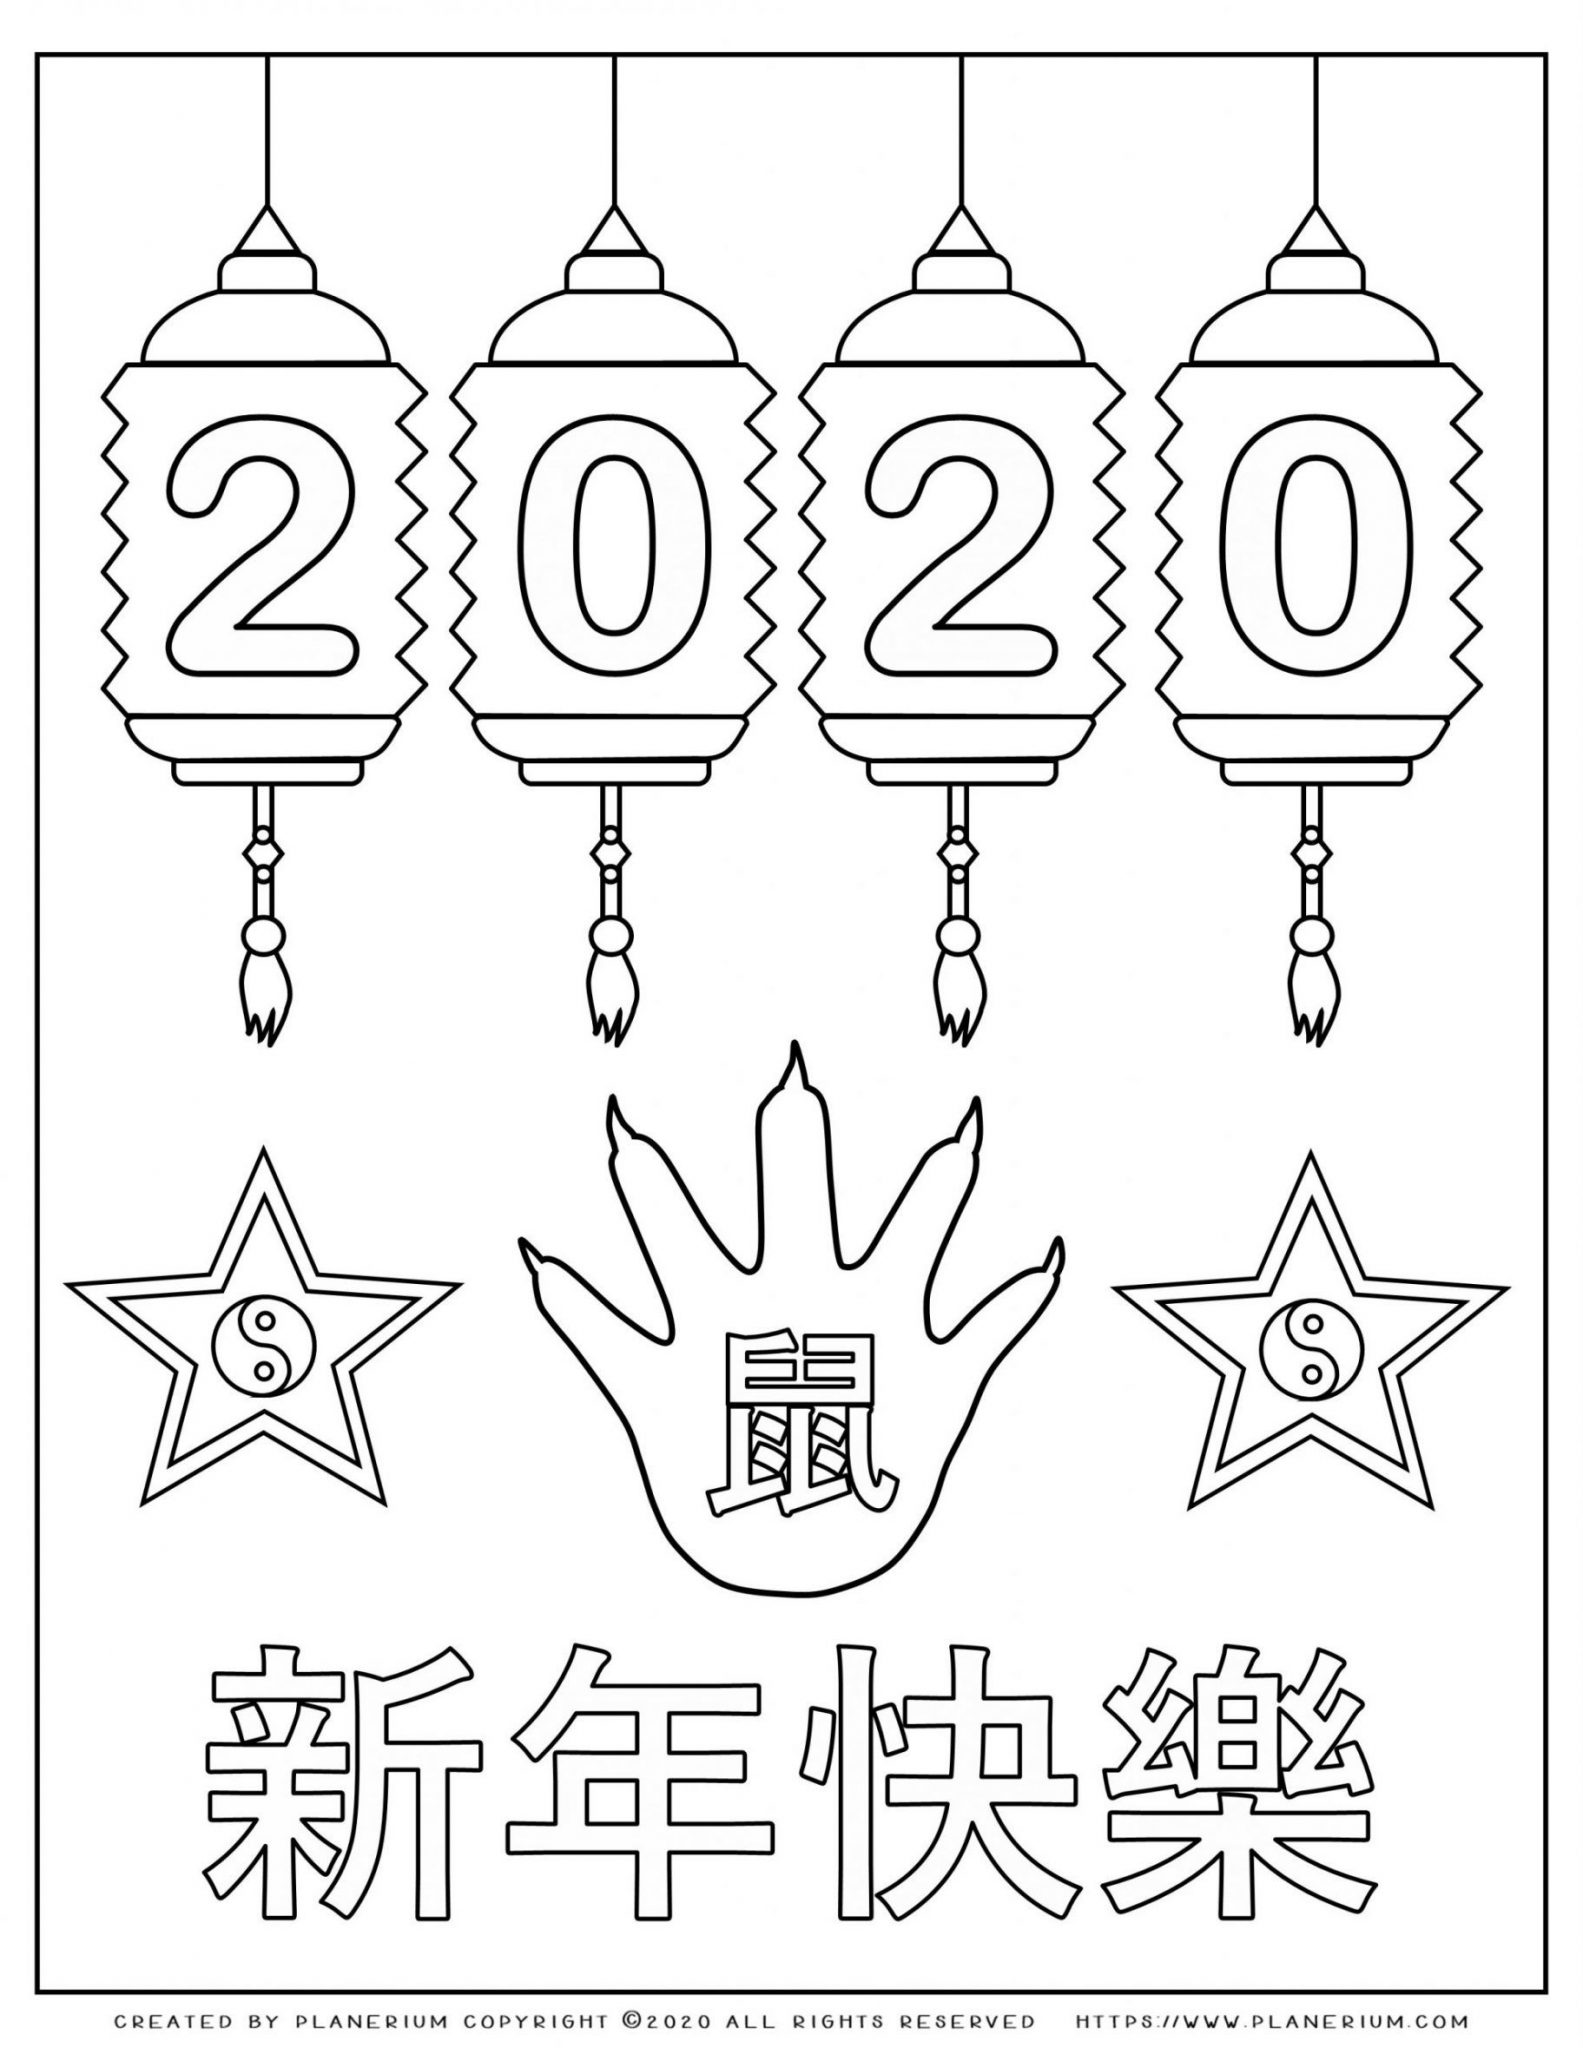 Lunar New Year Chinese Year of the Rat 2020 - Coloring Page - Lights | Planerium